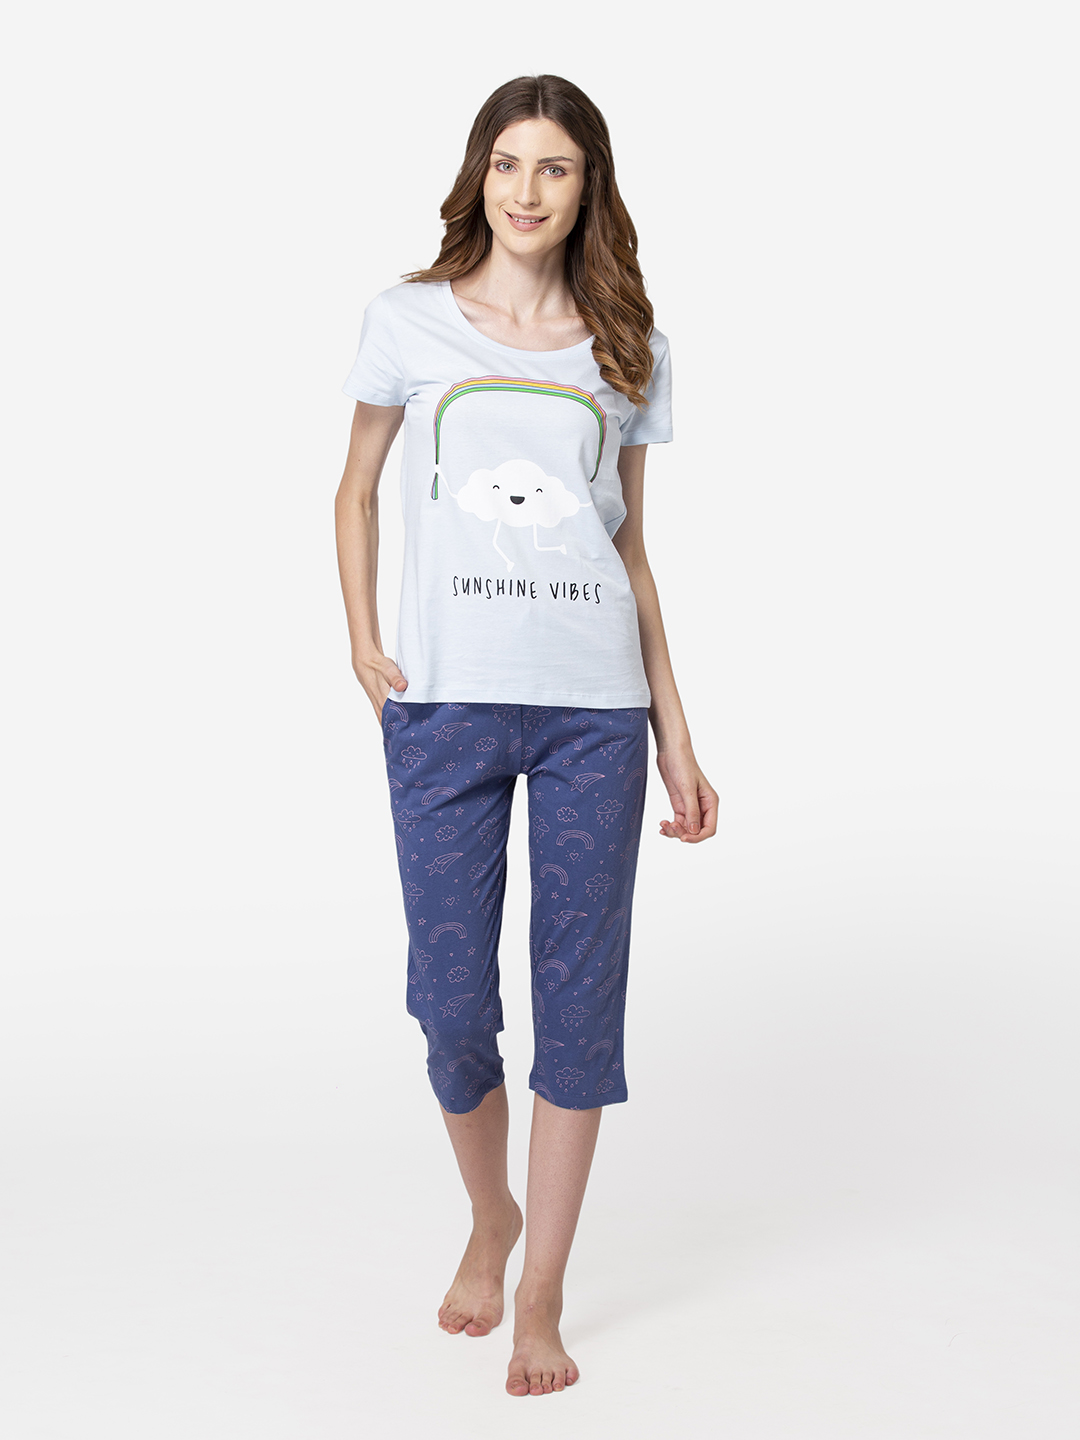 Lounge Dreams | LOUNGE DREAMS Womens Casual 100% Cotton Nightsuit